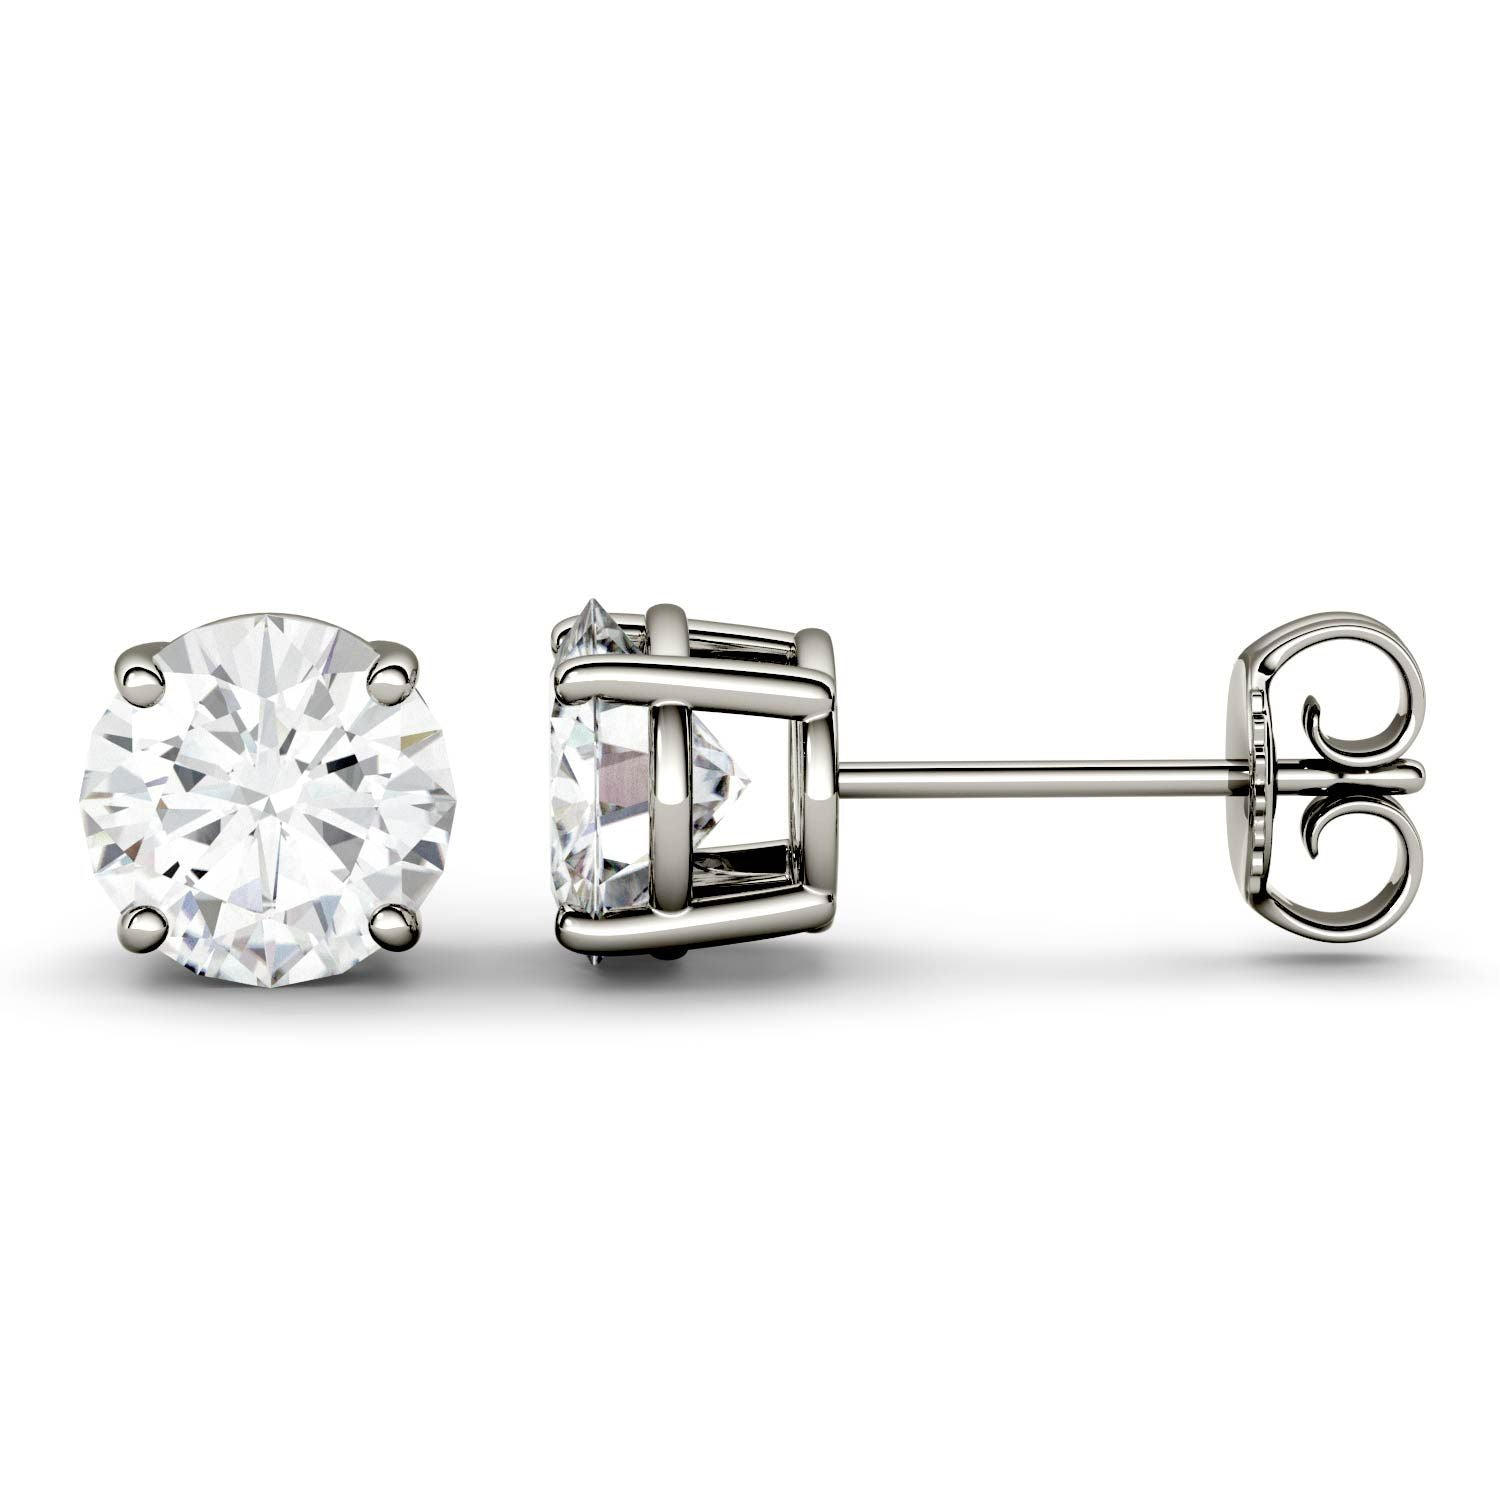 3 Carat TW Charles & Colvard Moissanite Stud Earrings in White Gold-612700 - Jewelry by Johan